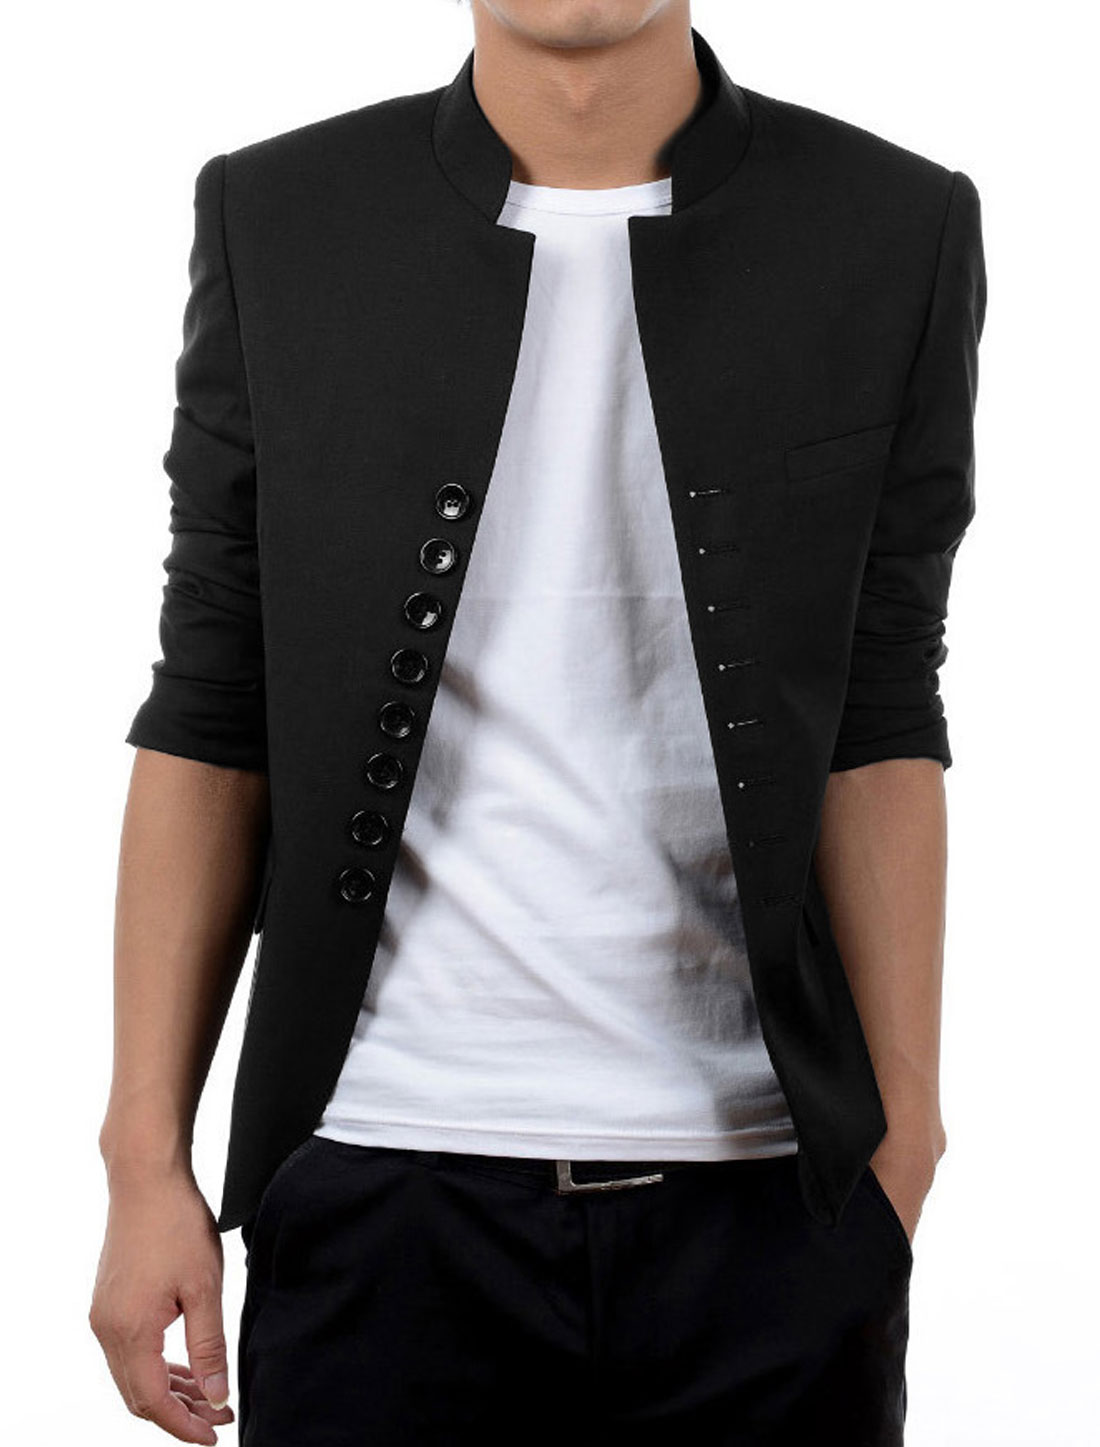 Men Black Single Breasted Padded Shoulder Front Pockets Slim Fit Blazer Jacket M